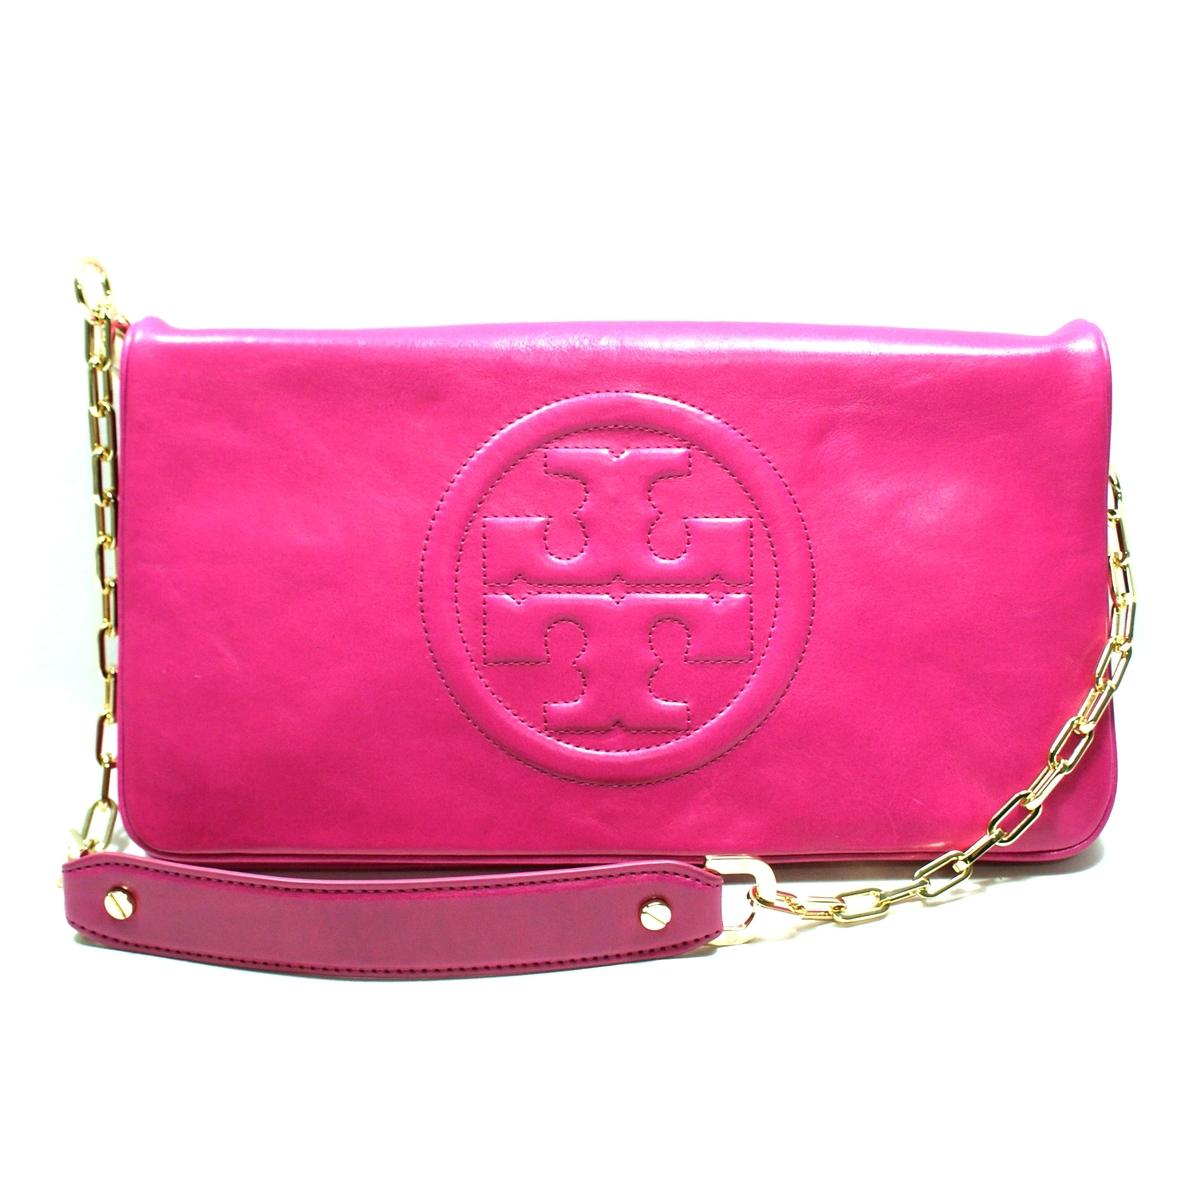 Case Design tory burch cell phone cases : Tory Burch Magenta Leather Bombe Reva Clutch/ Shoulder Bag #90009600 ...